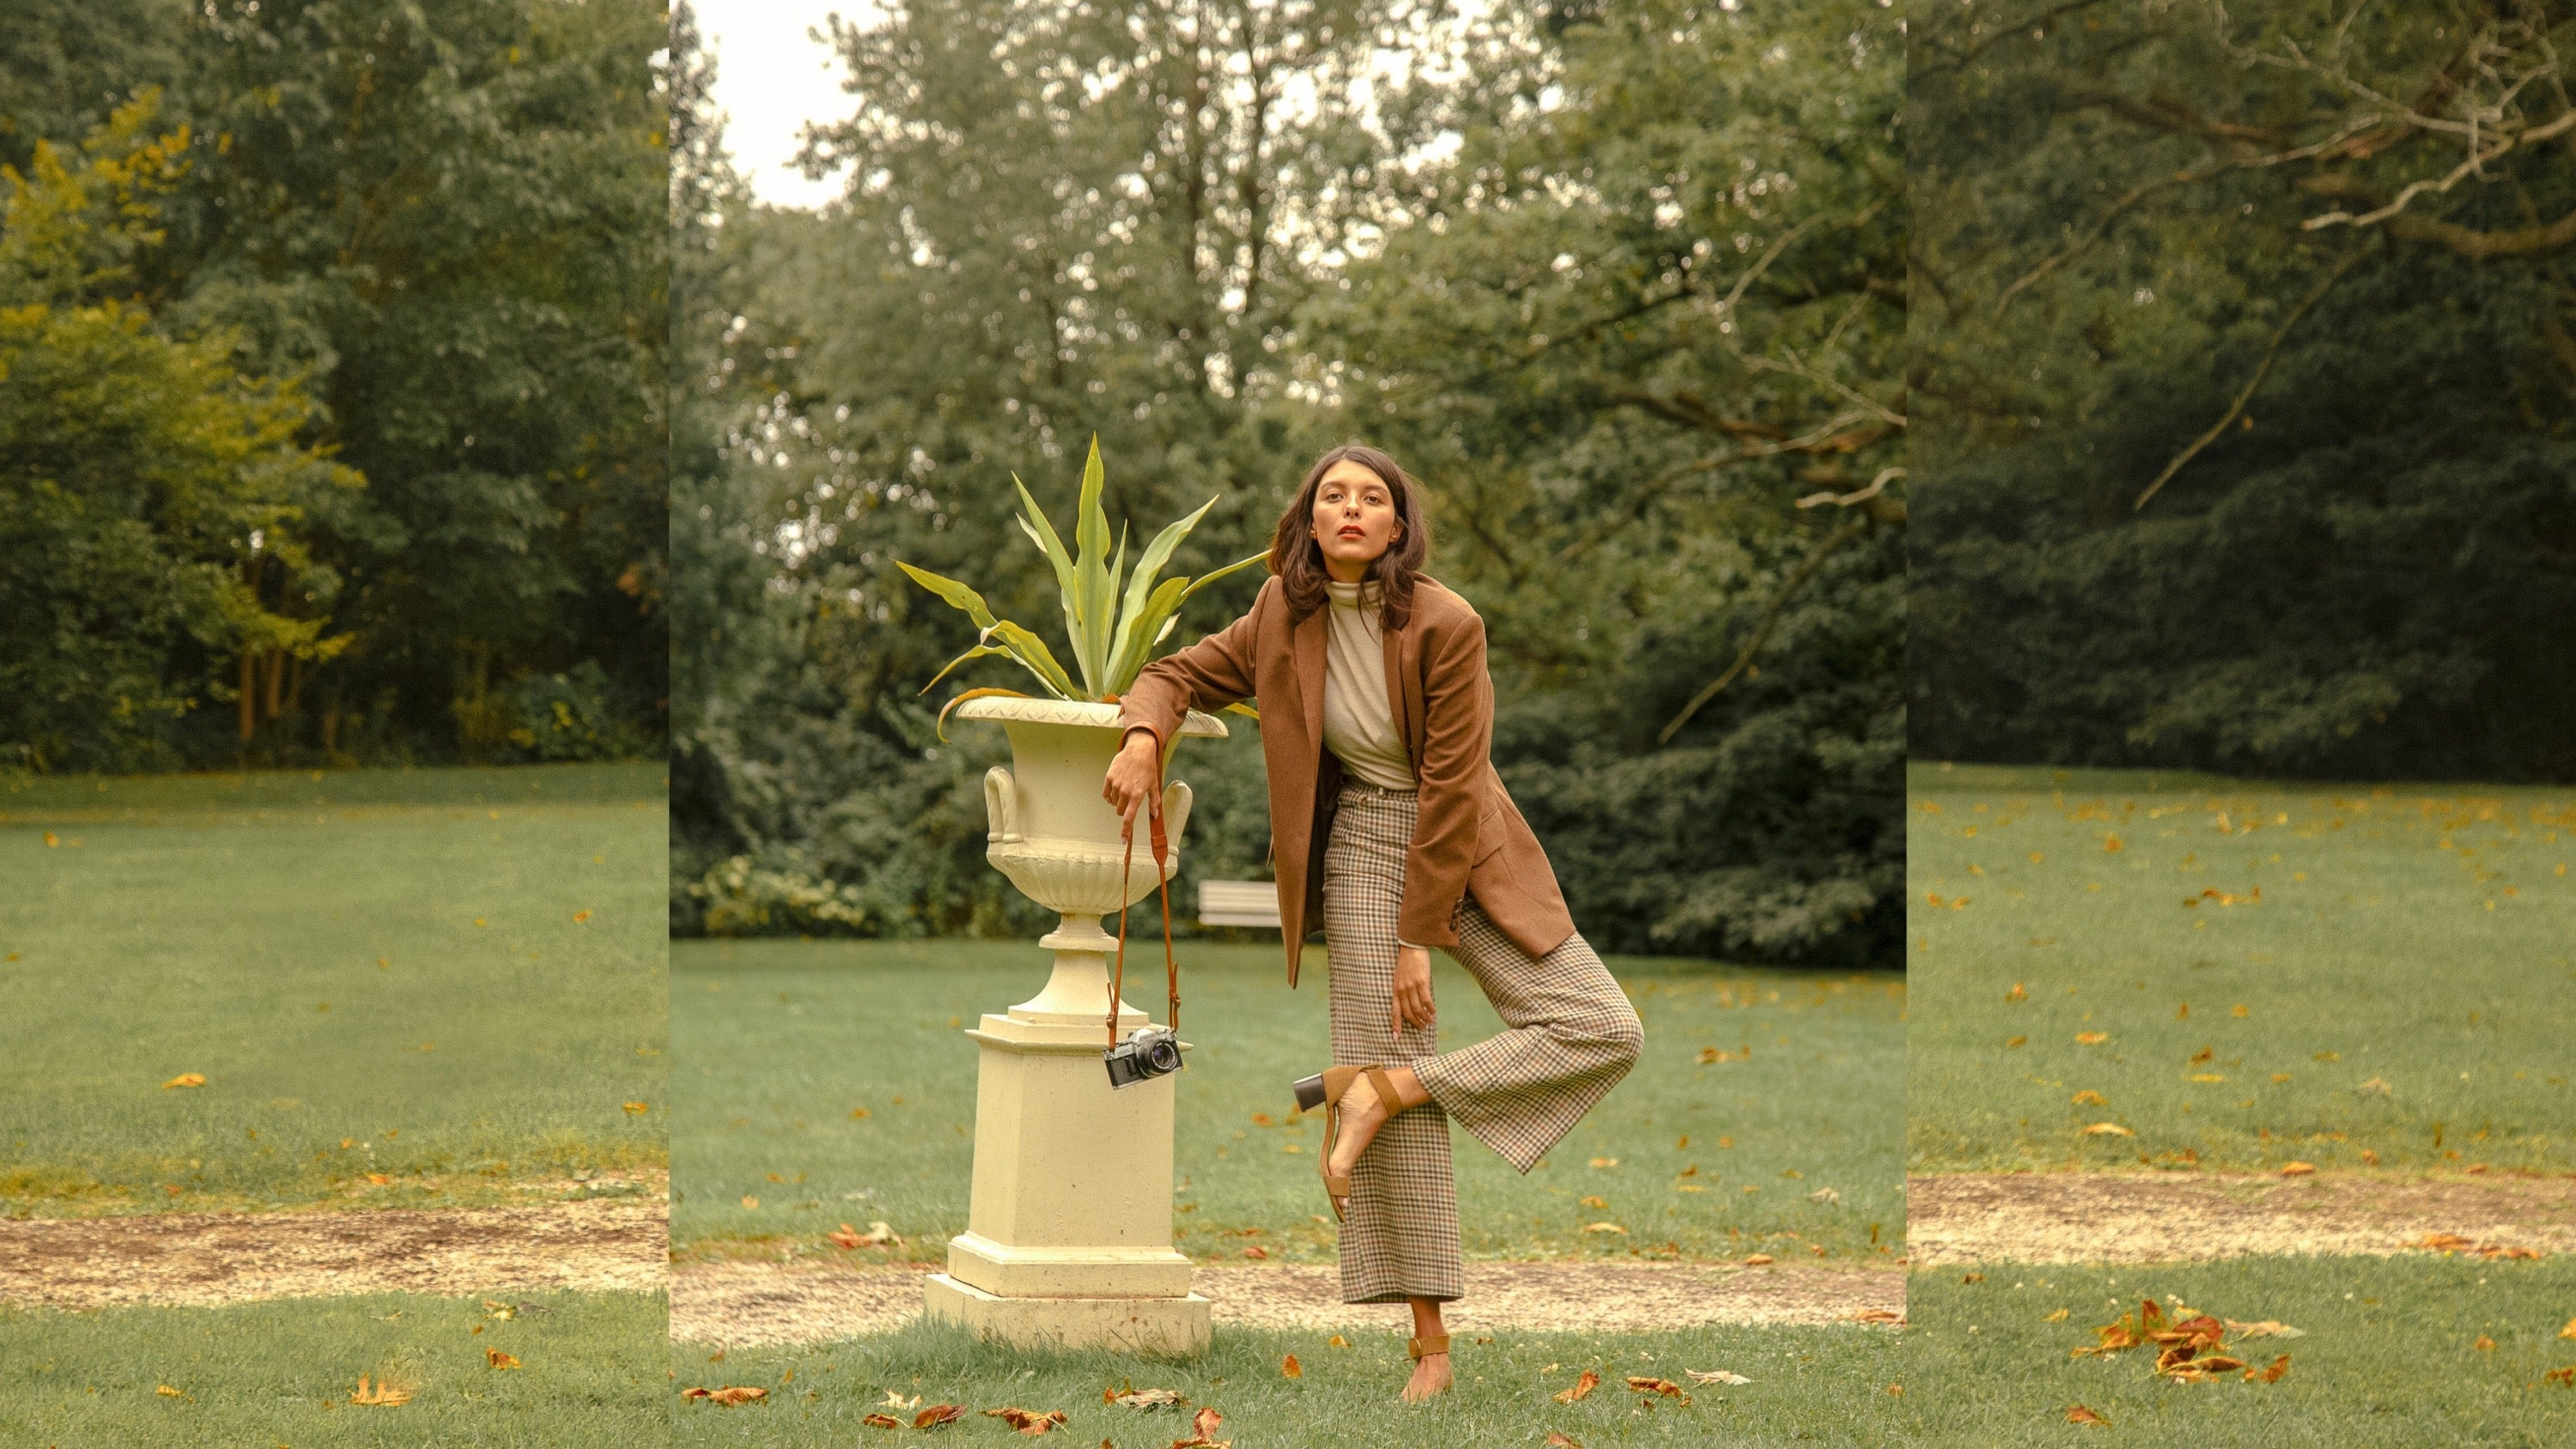 Autumn Leaves | Fall'19 Campaign by Jolie Laide